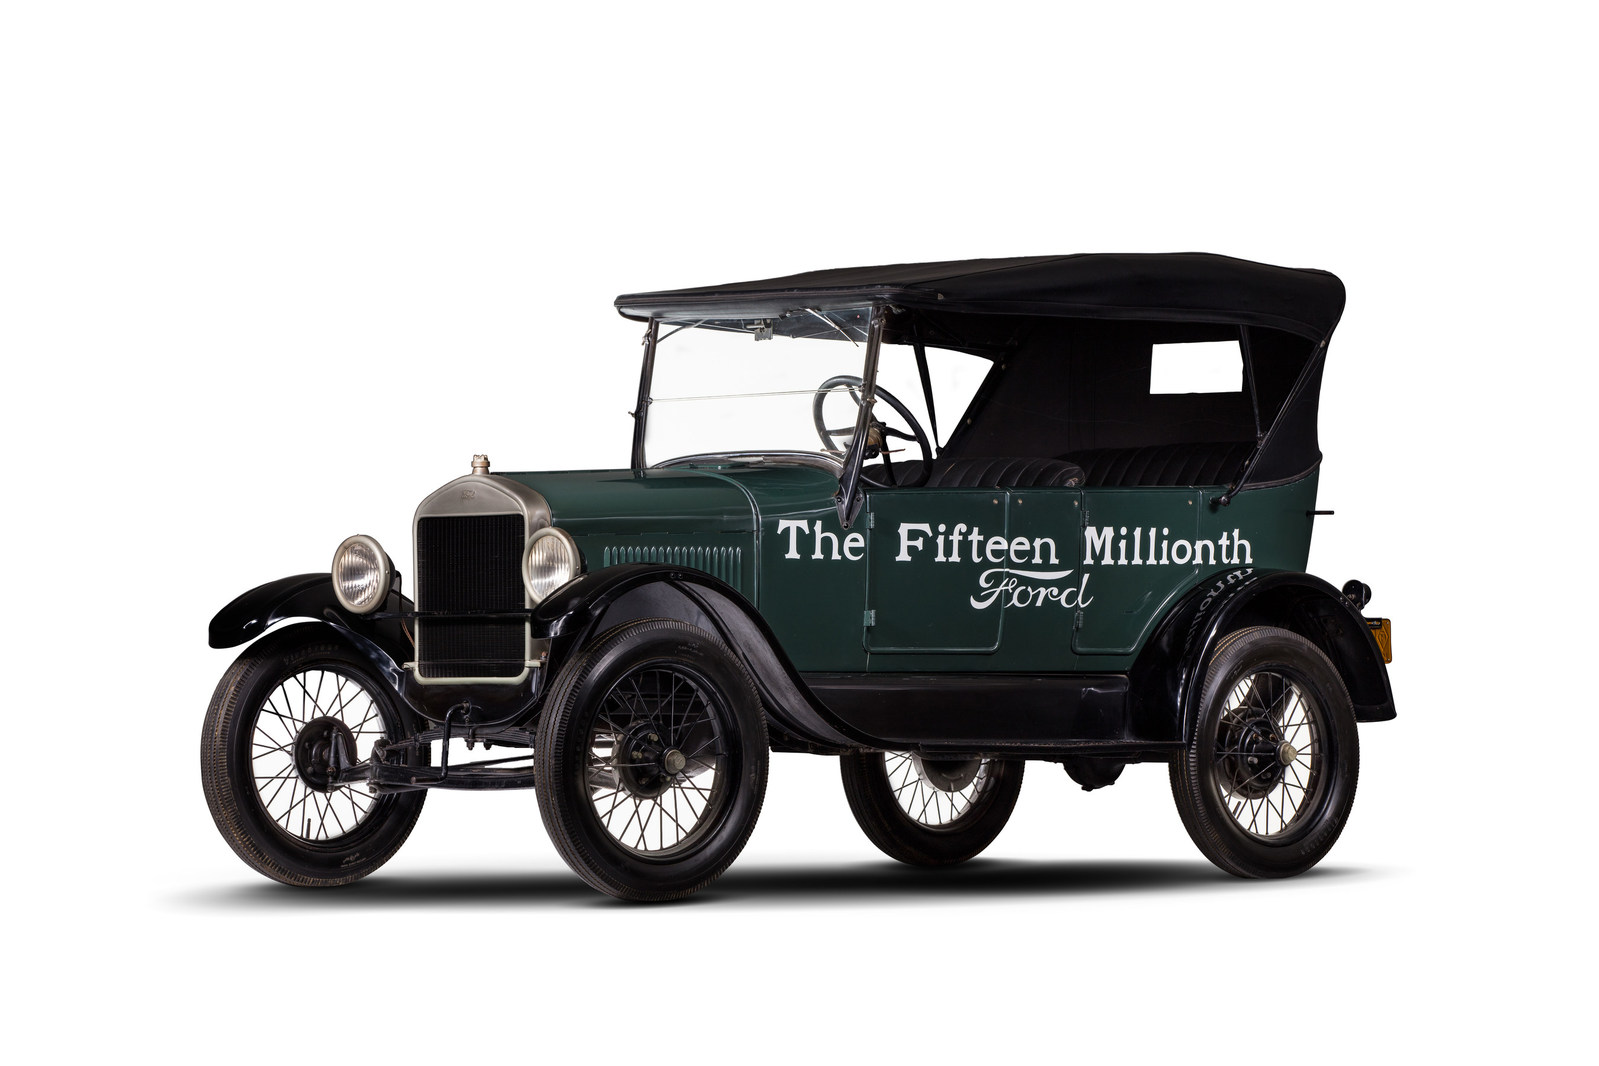 1927 Ford Model T Fifteen Millionth Ford - Historic Vehicle Association